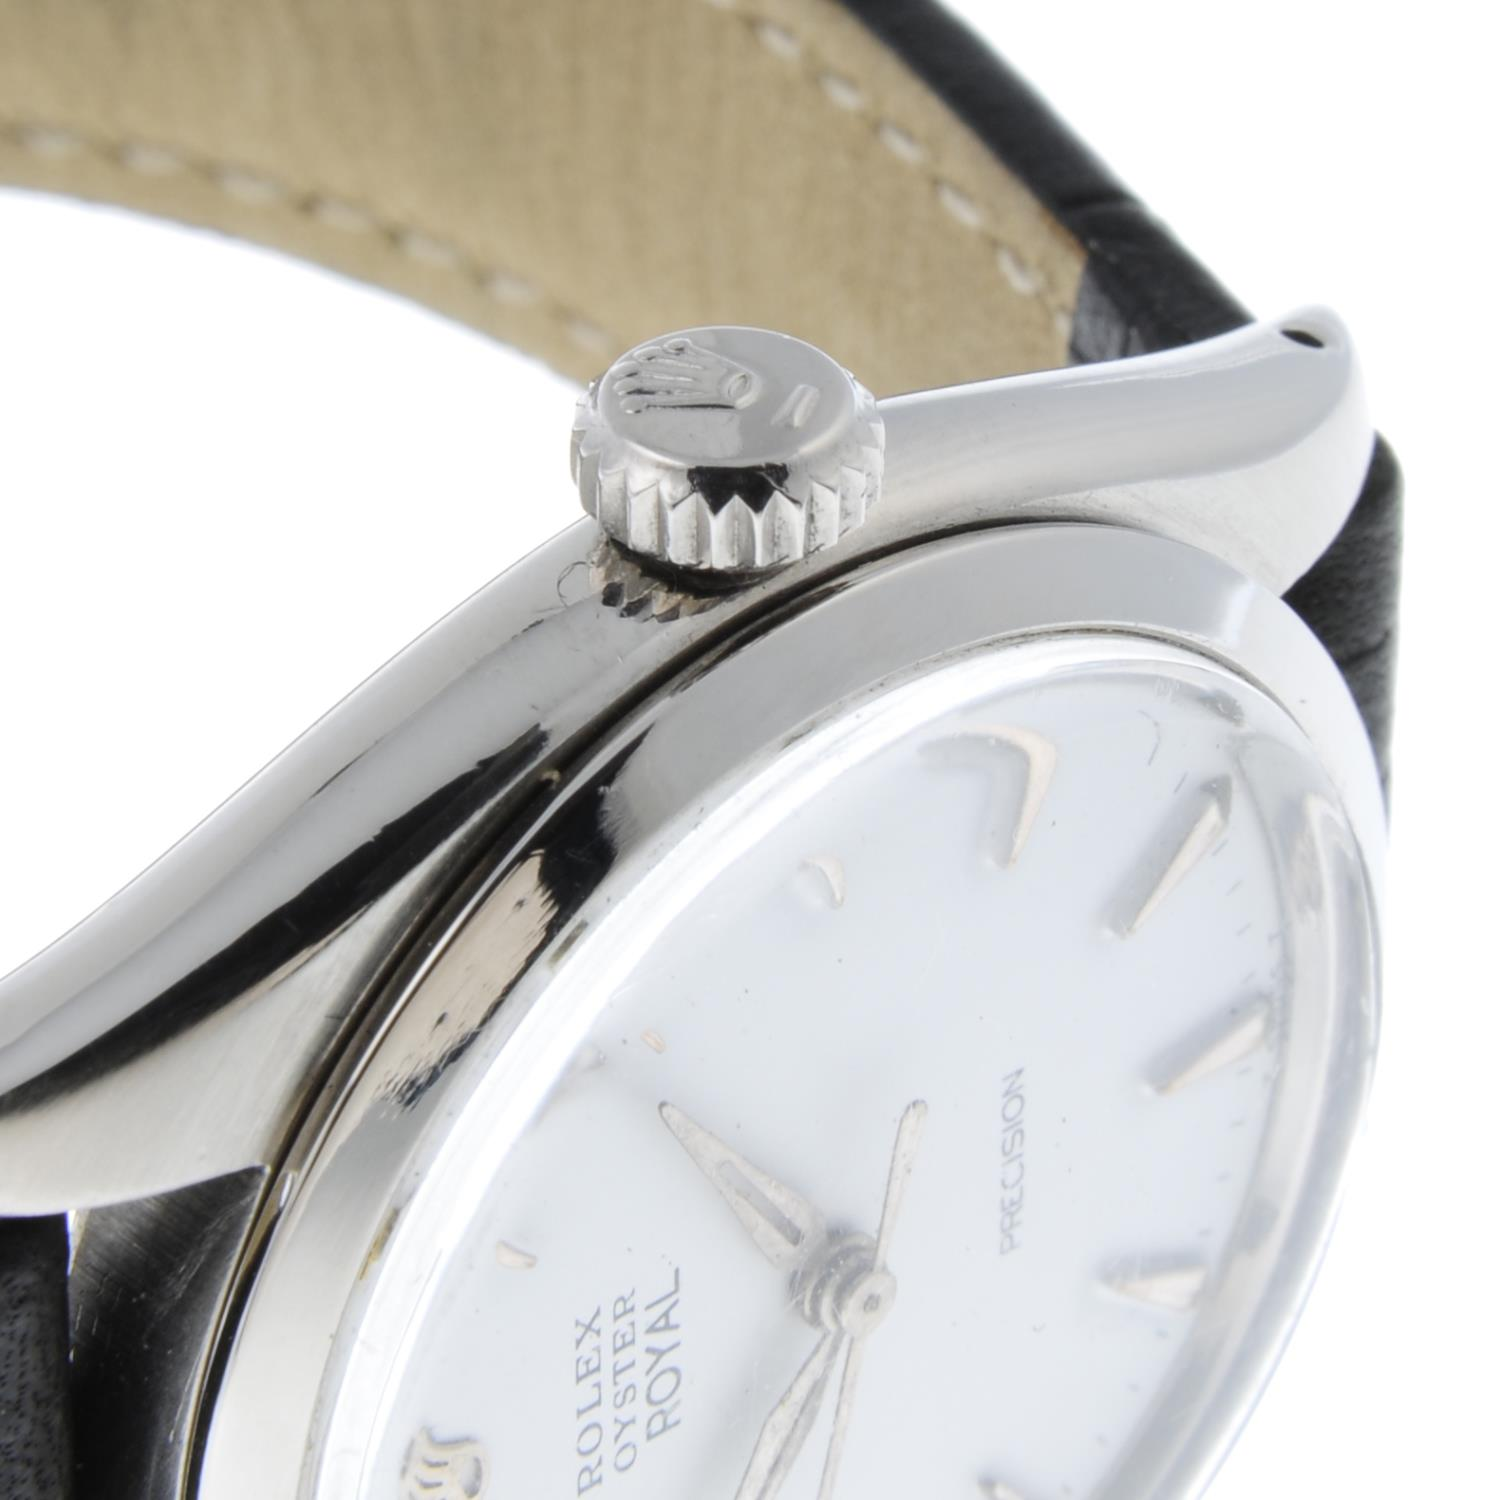 ROLEX - an Oyster Precision wrist watch. - Image 5 of 5